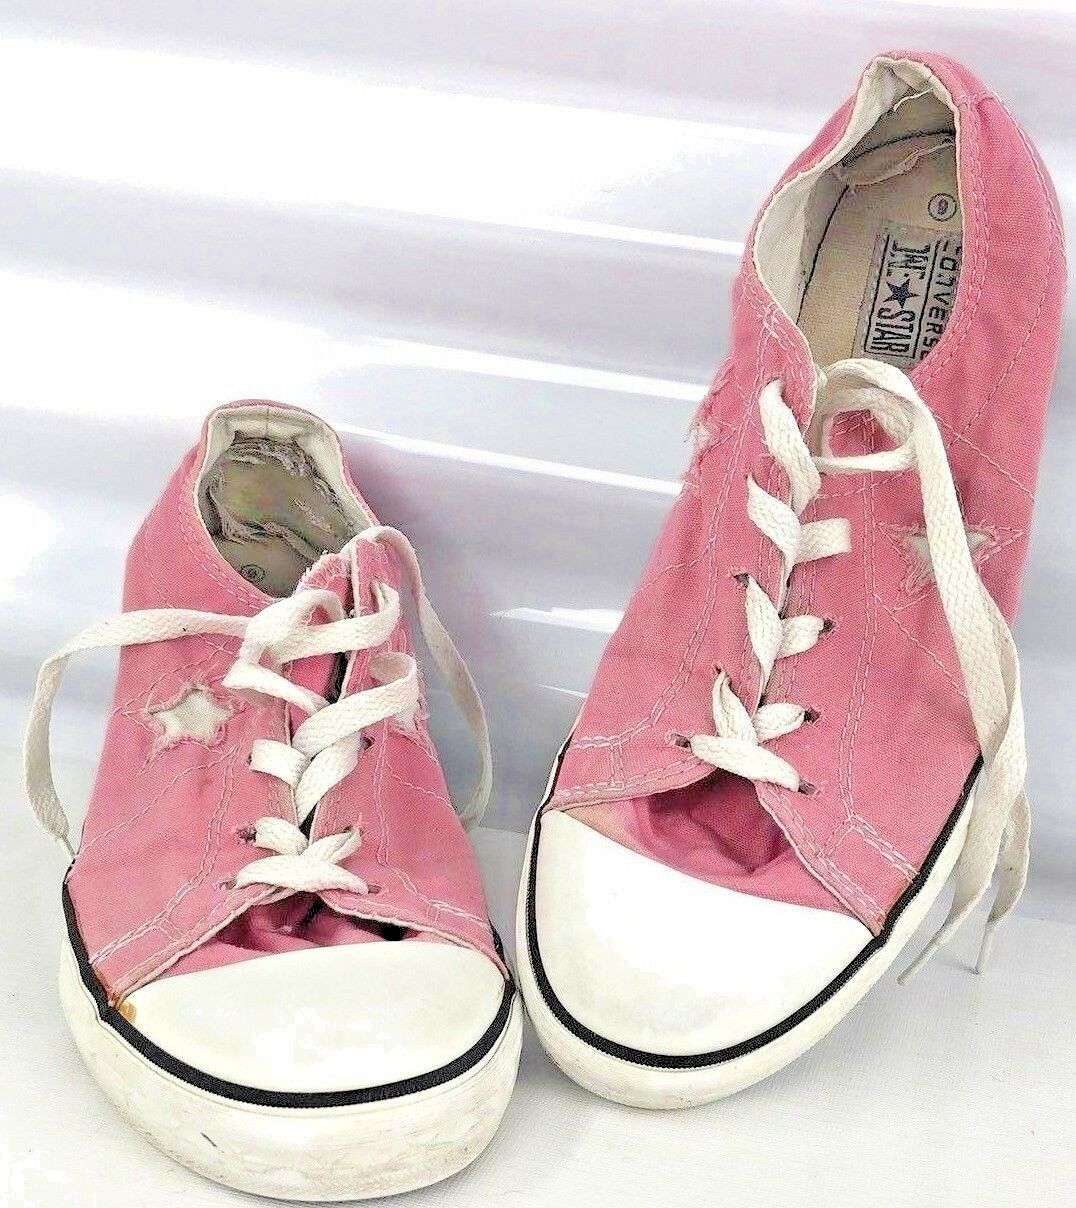 Pink Converse Woman 6 All Stars Low Top Hipster Shoes Canvas